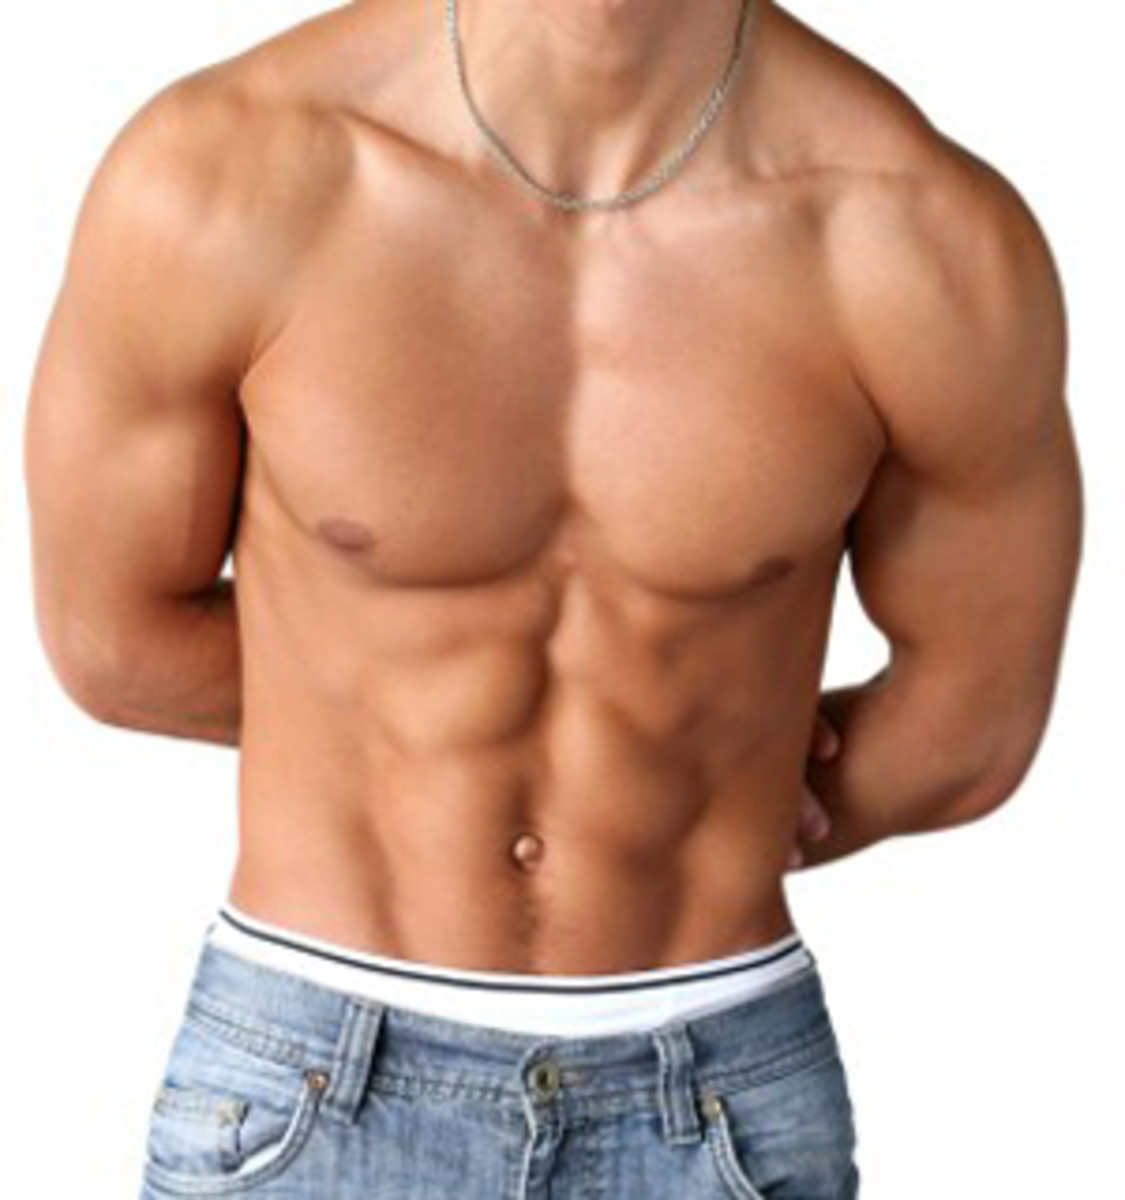 It is not as hard as you think to look like this and build muscle without weights.